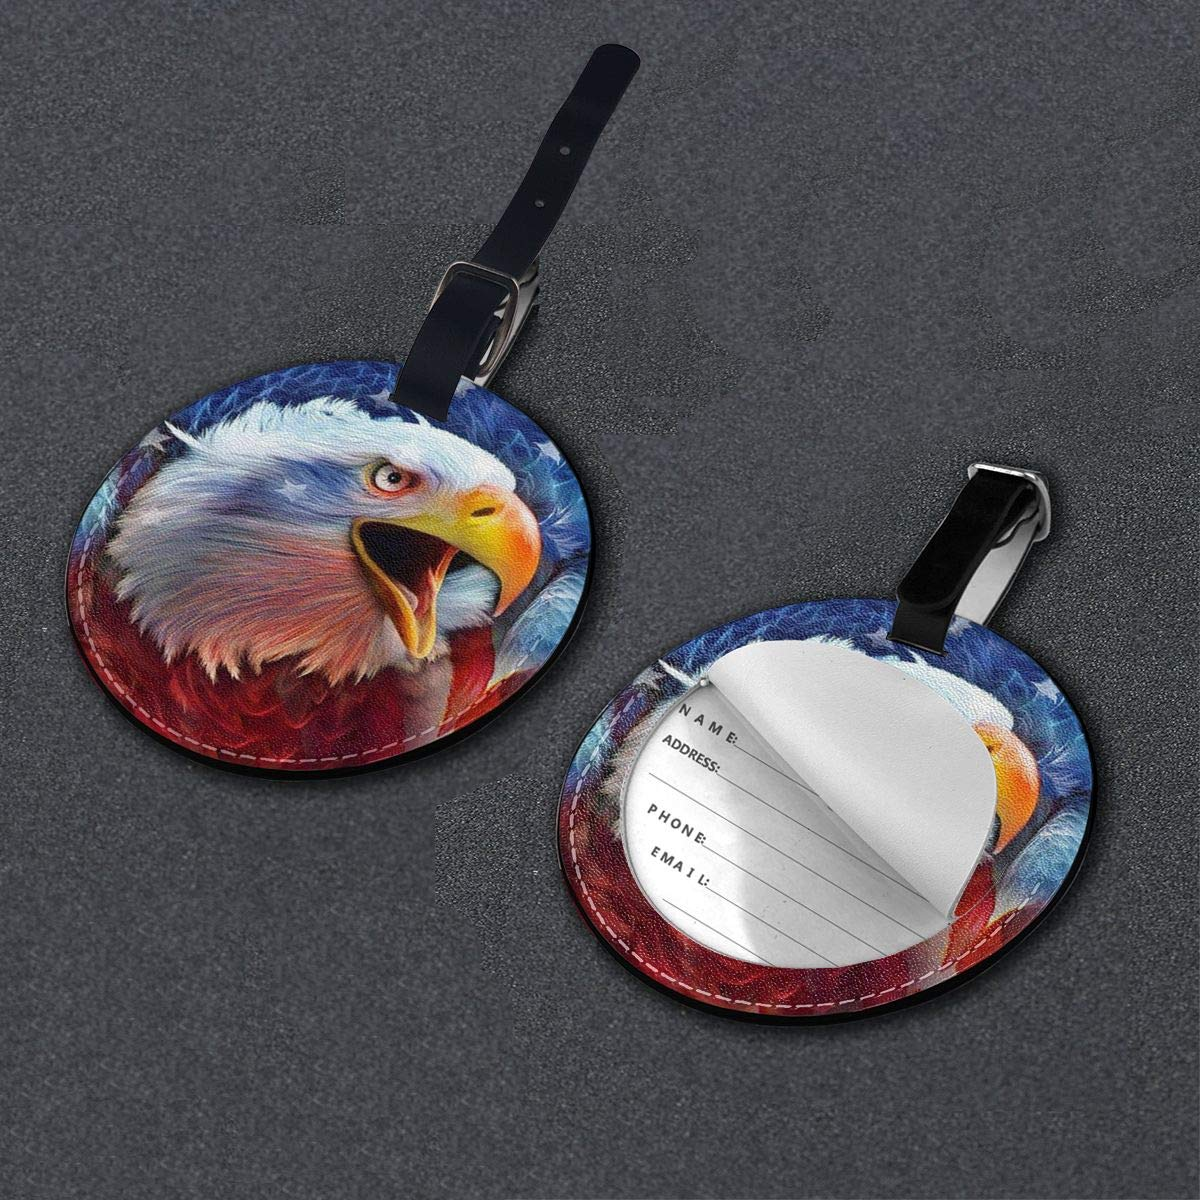 Hs8weyhfffFFF Luggage Tag Round Eagle and Flag Leather Luggage Bag Label Privacy Cover Business Travel Bag Label